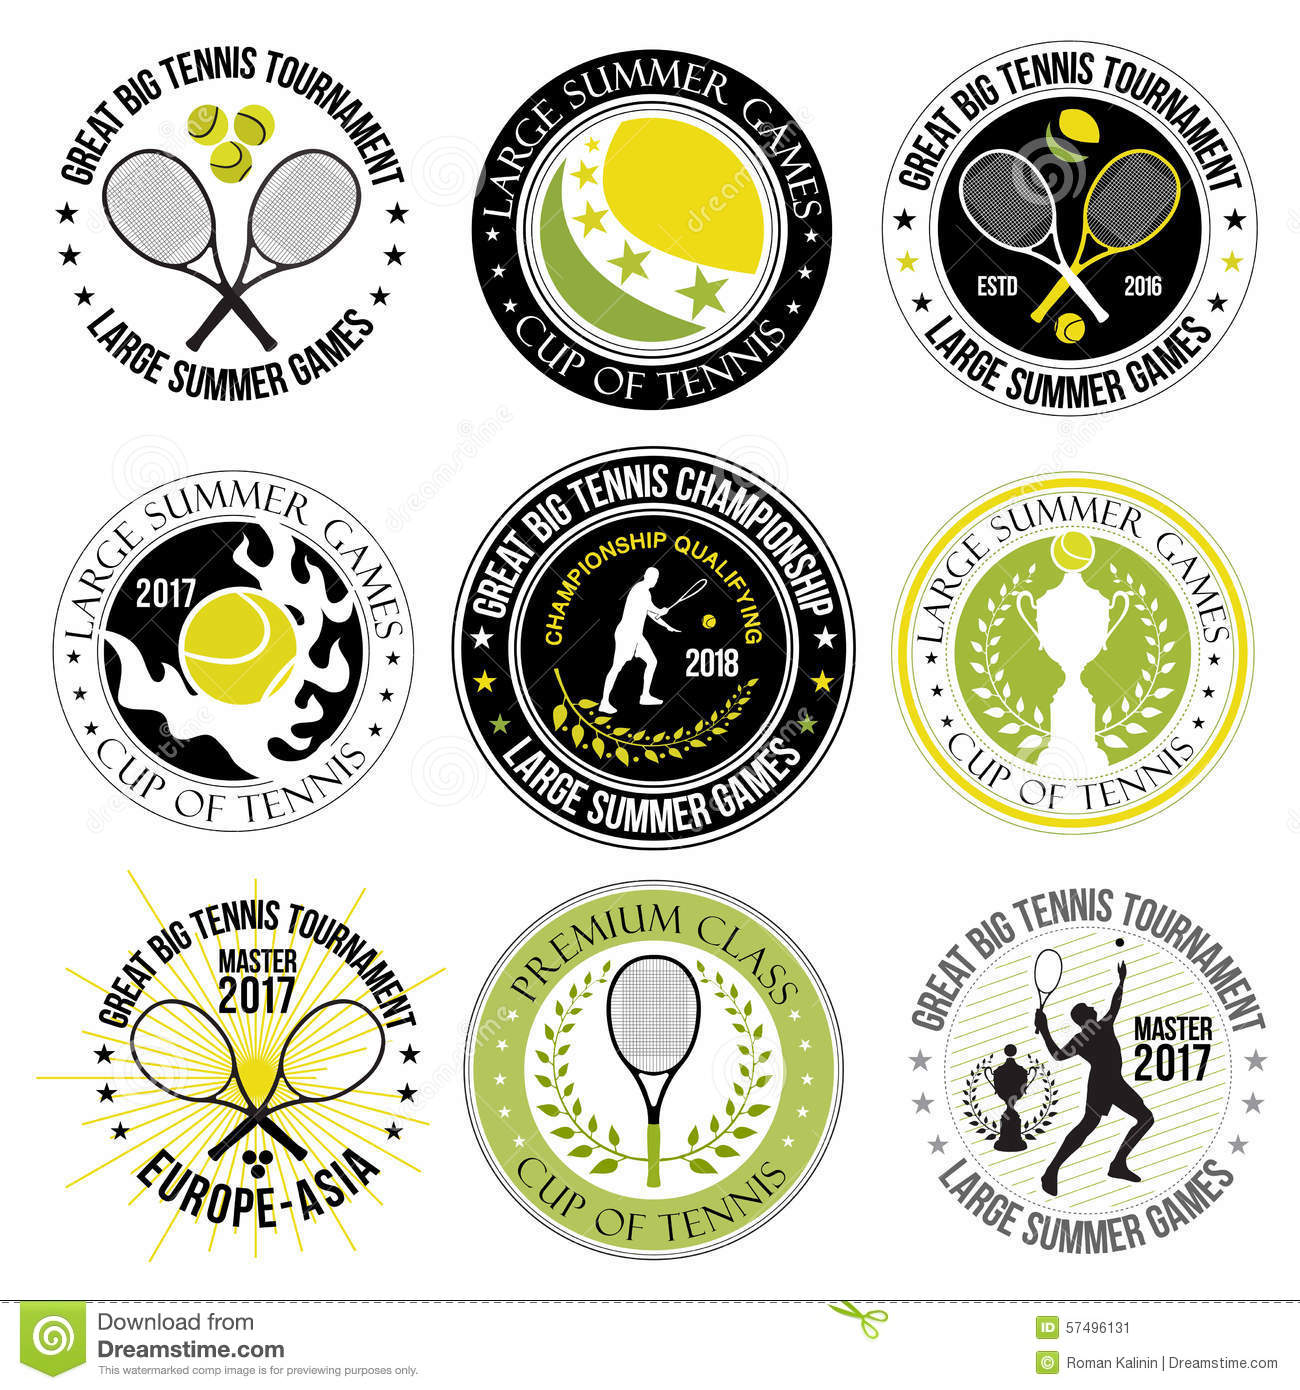 Tennis Shirt Designs